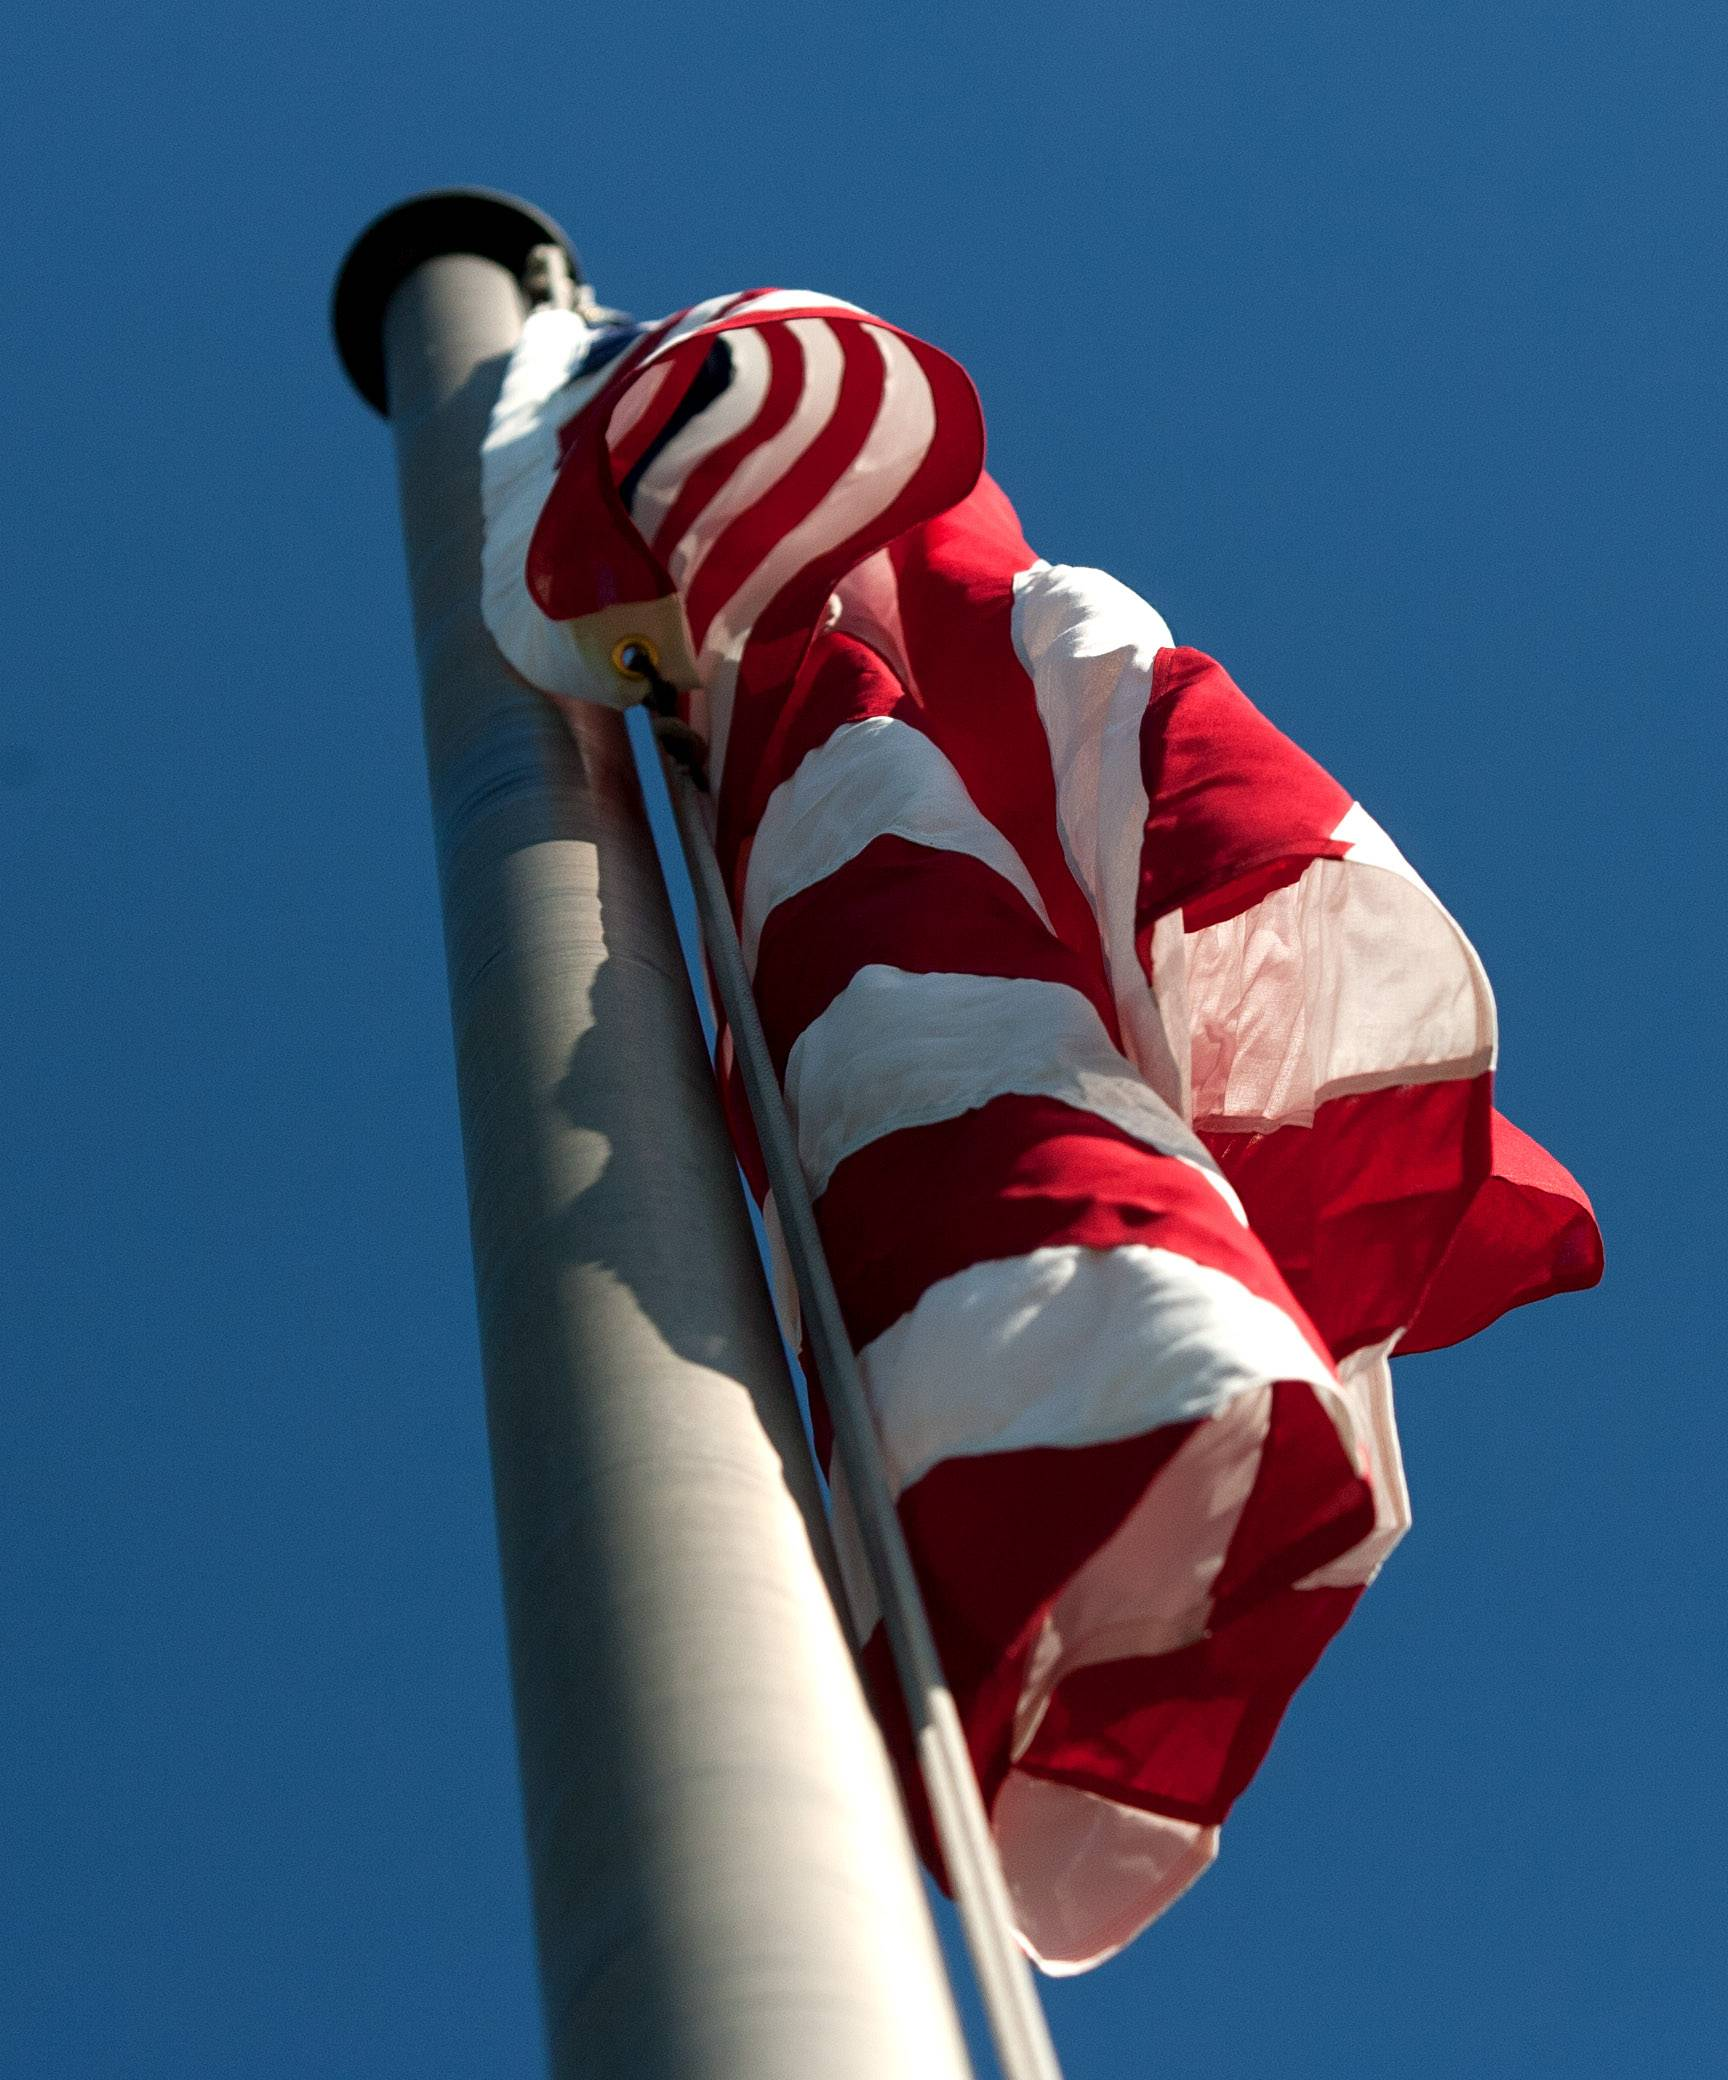 A new American flag is flying outside St. James the Apostle School in Glen Ellyn.